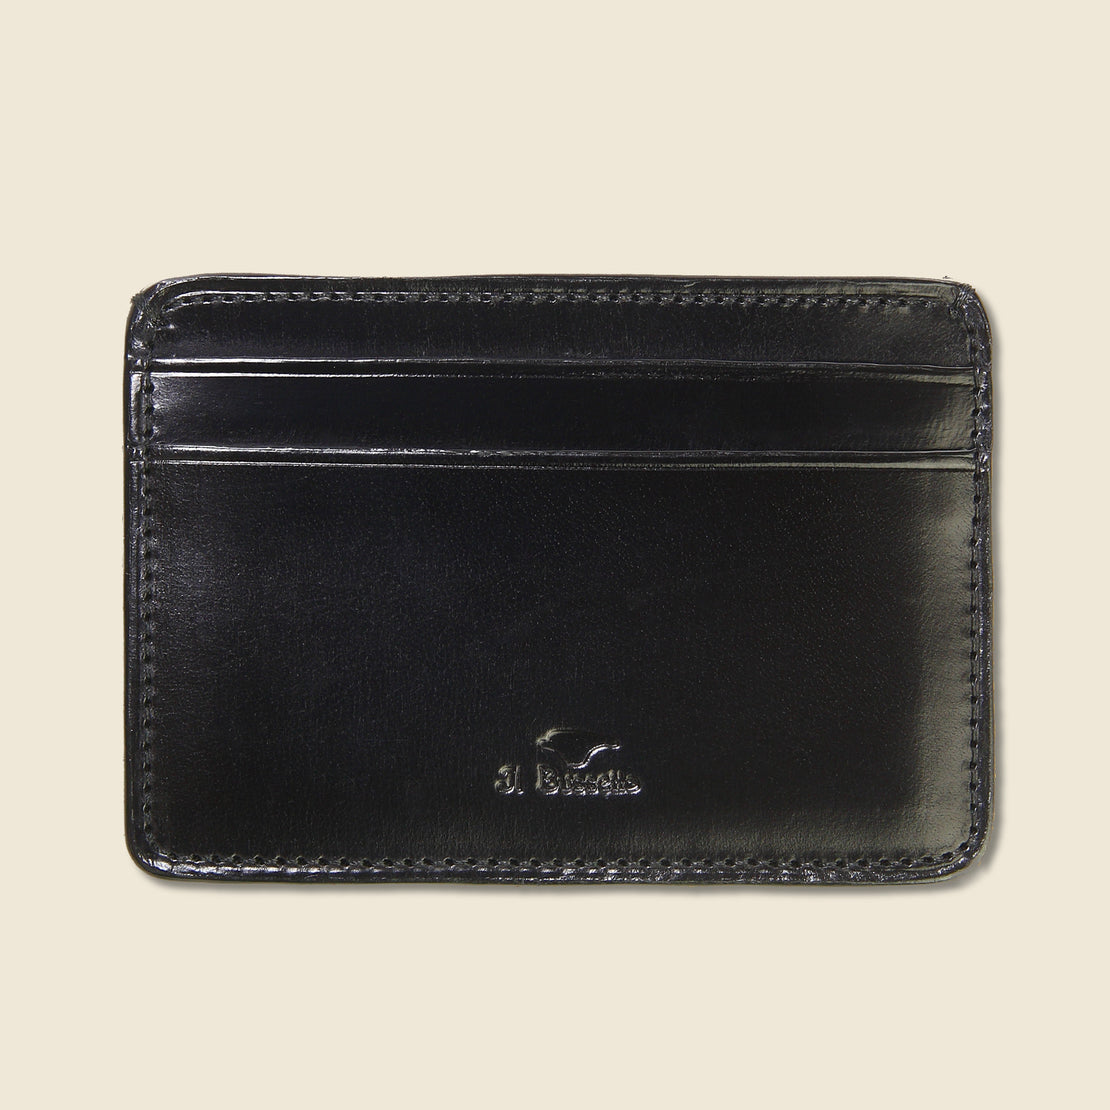 Il Bussetto Credit Card Case - Black